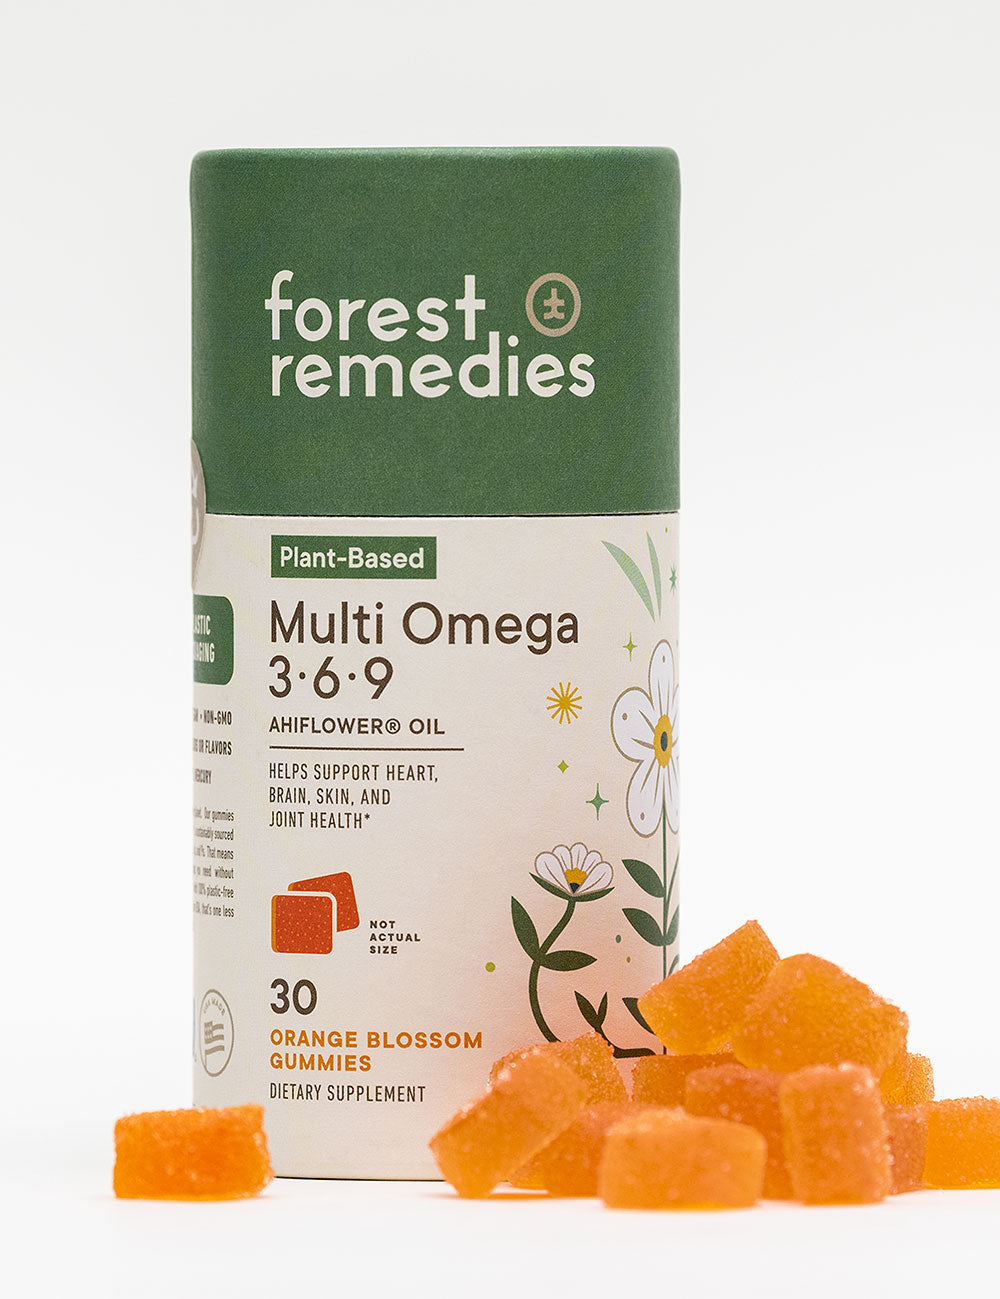 Multi-Omega 3-6-9 with Ahiflower Oil Gummies